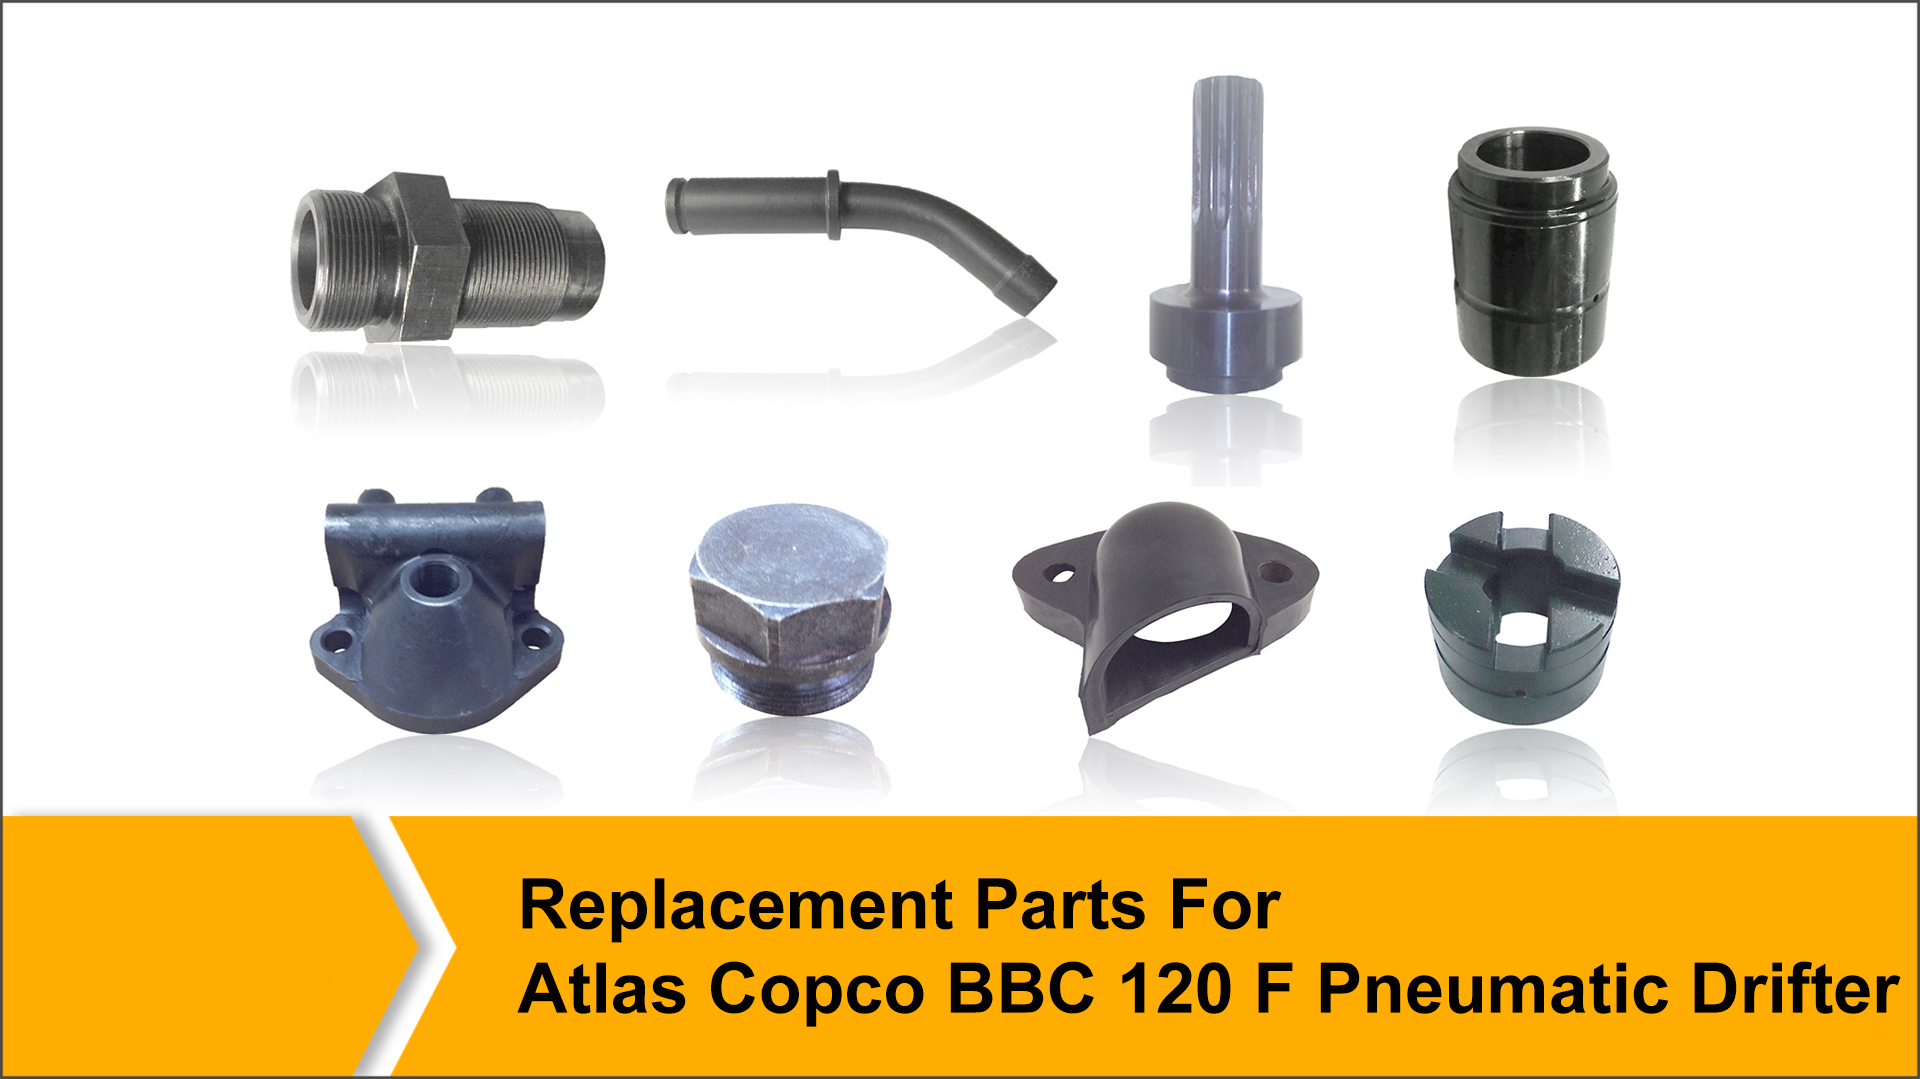 Replacement Parts for Atlas Copco BBC 120 F